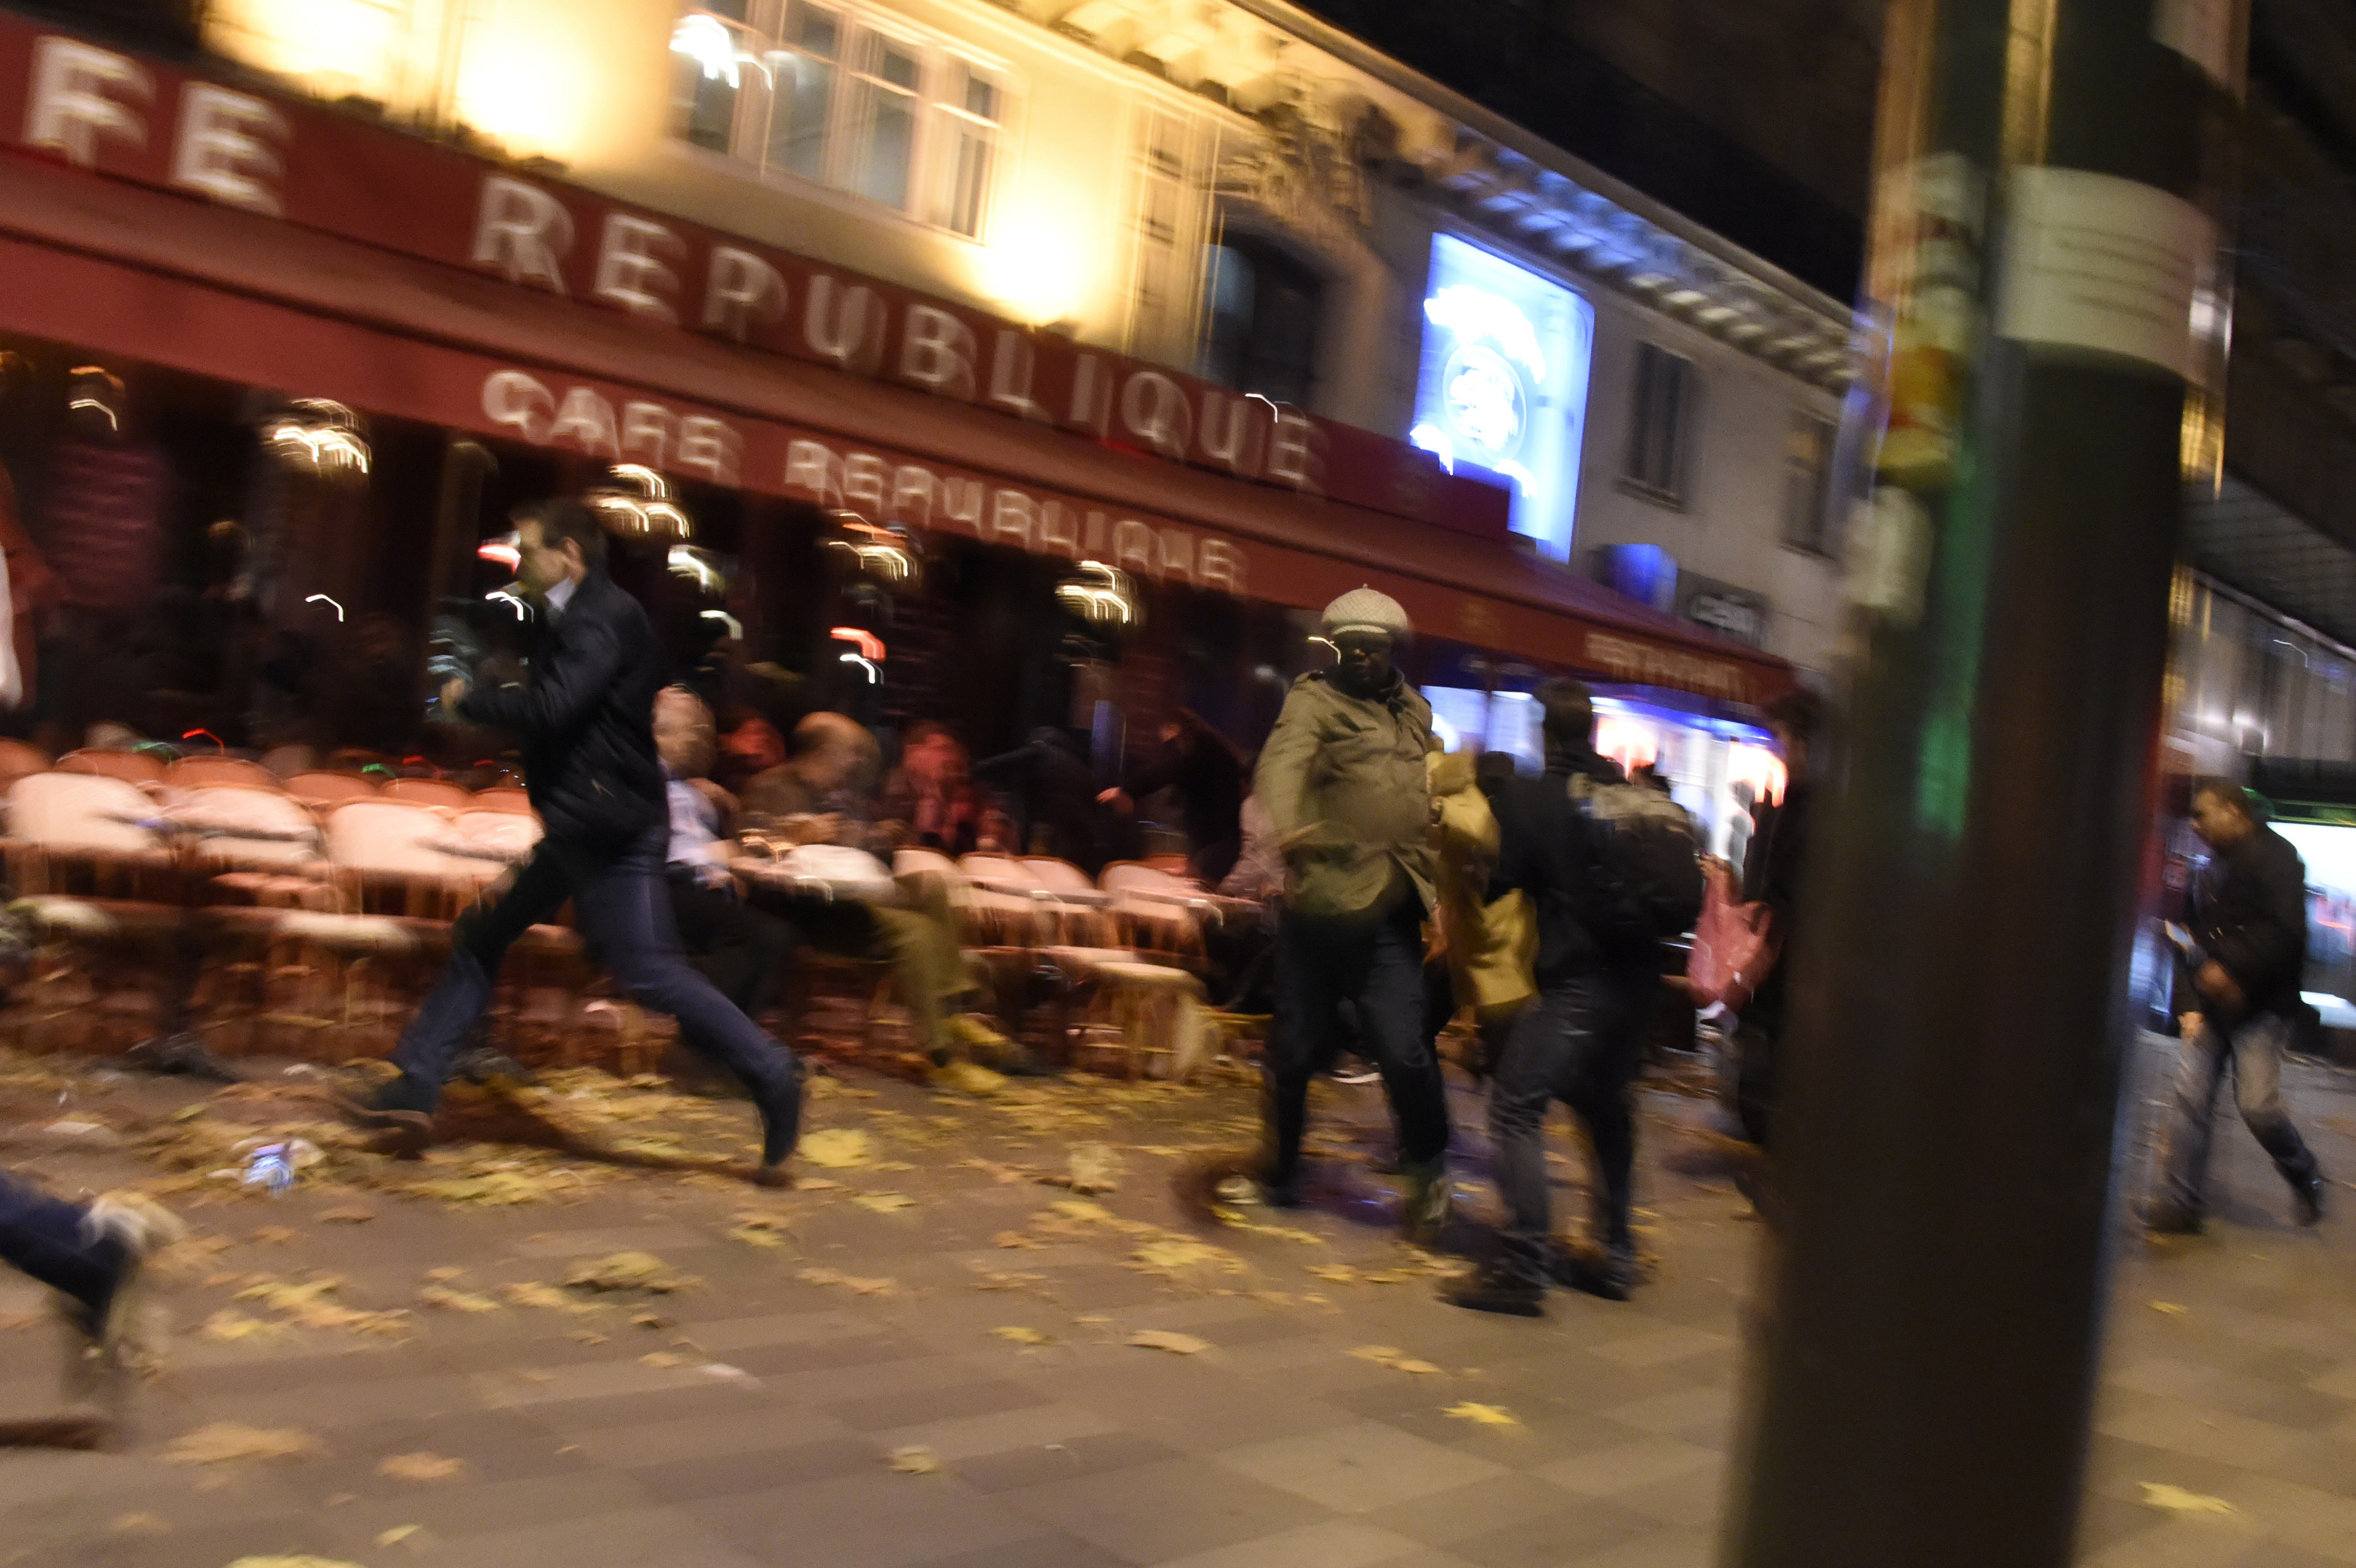 People run after hearing what is believed to be explosions or gun shots near Place de la Republique square. (Getty)